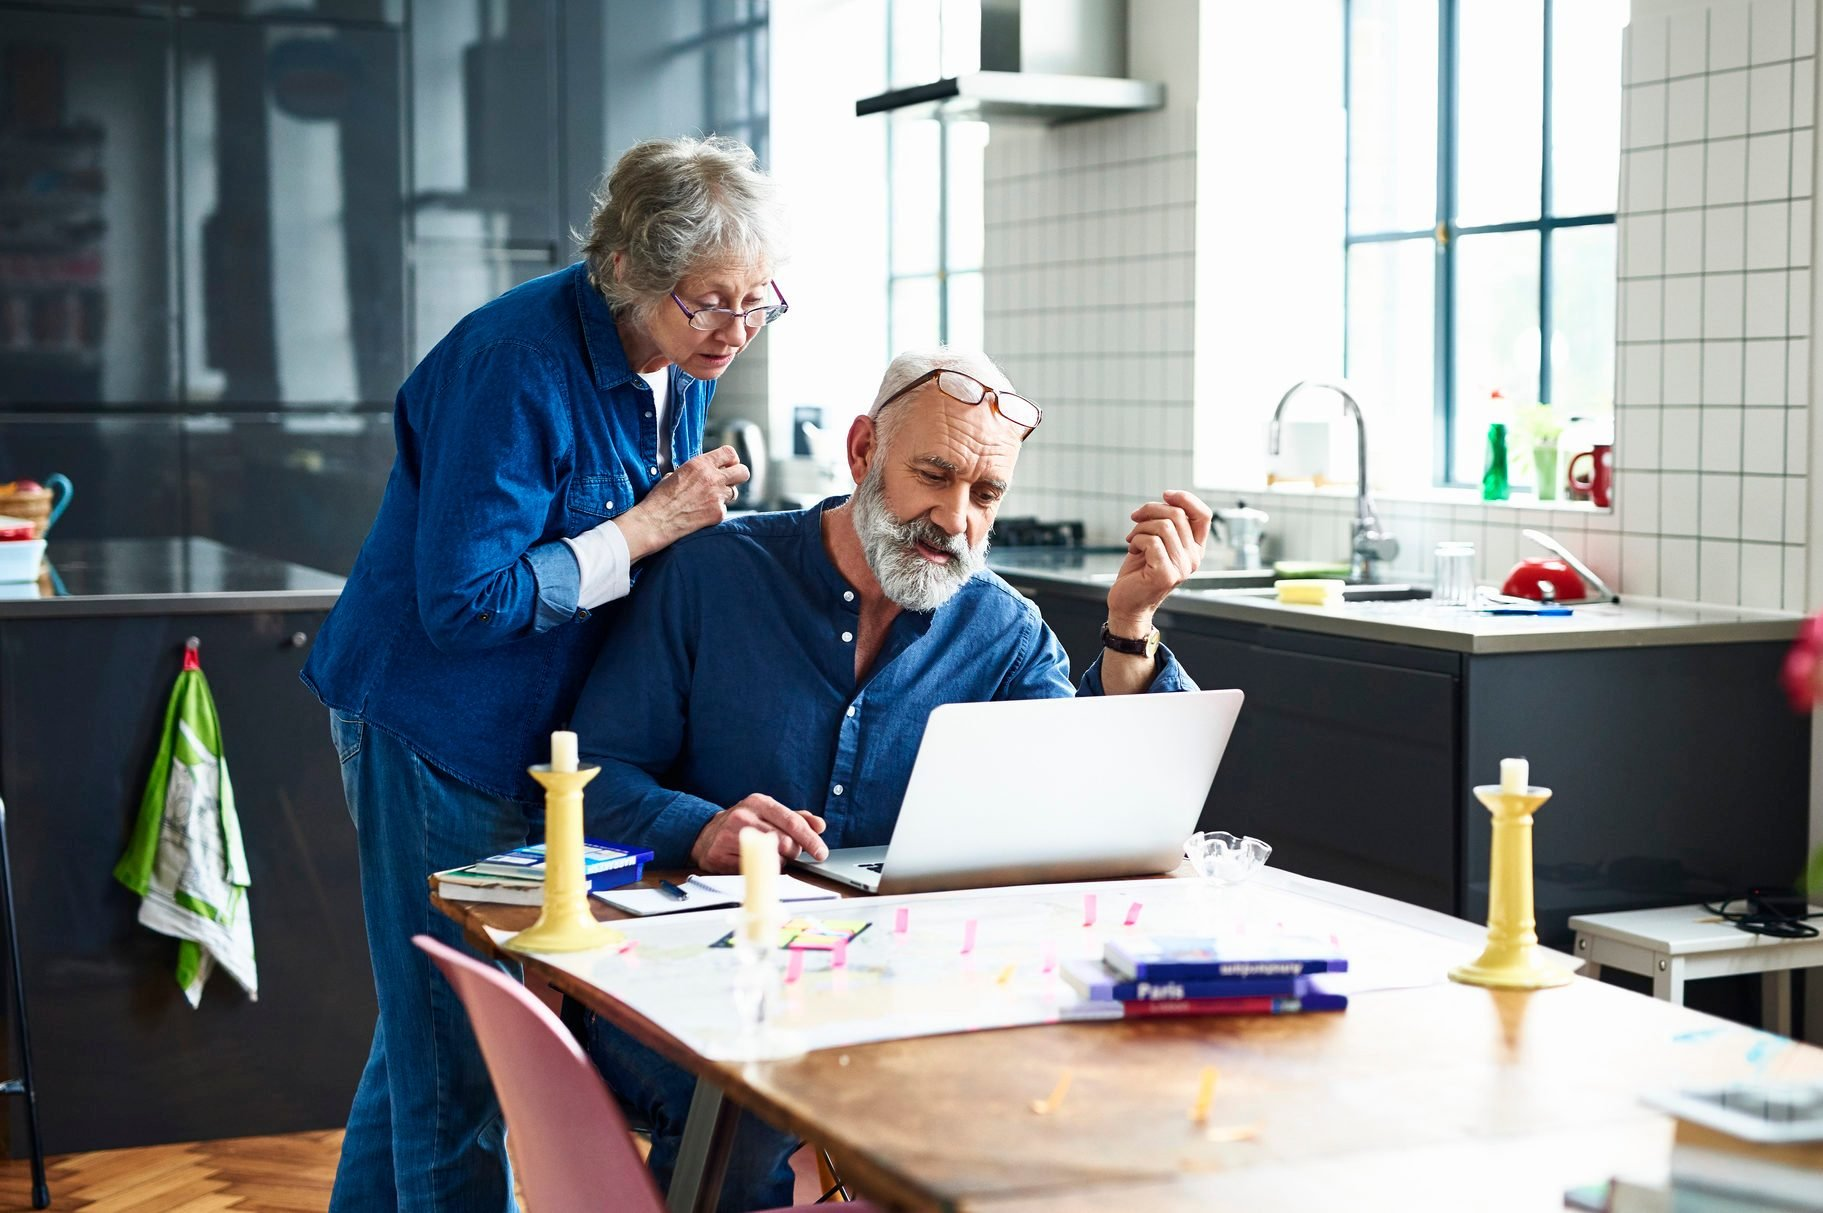 Senior couple planing vacation with map and laptop on table